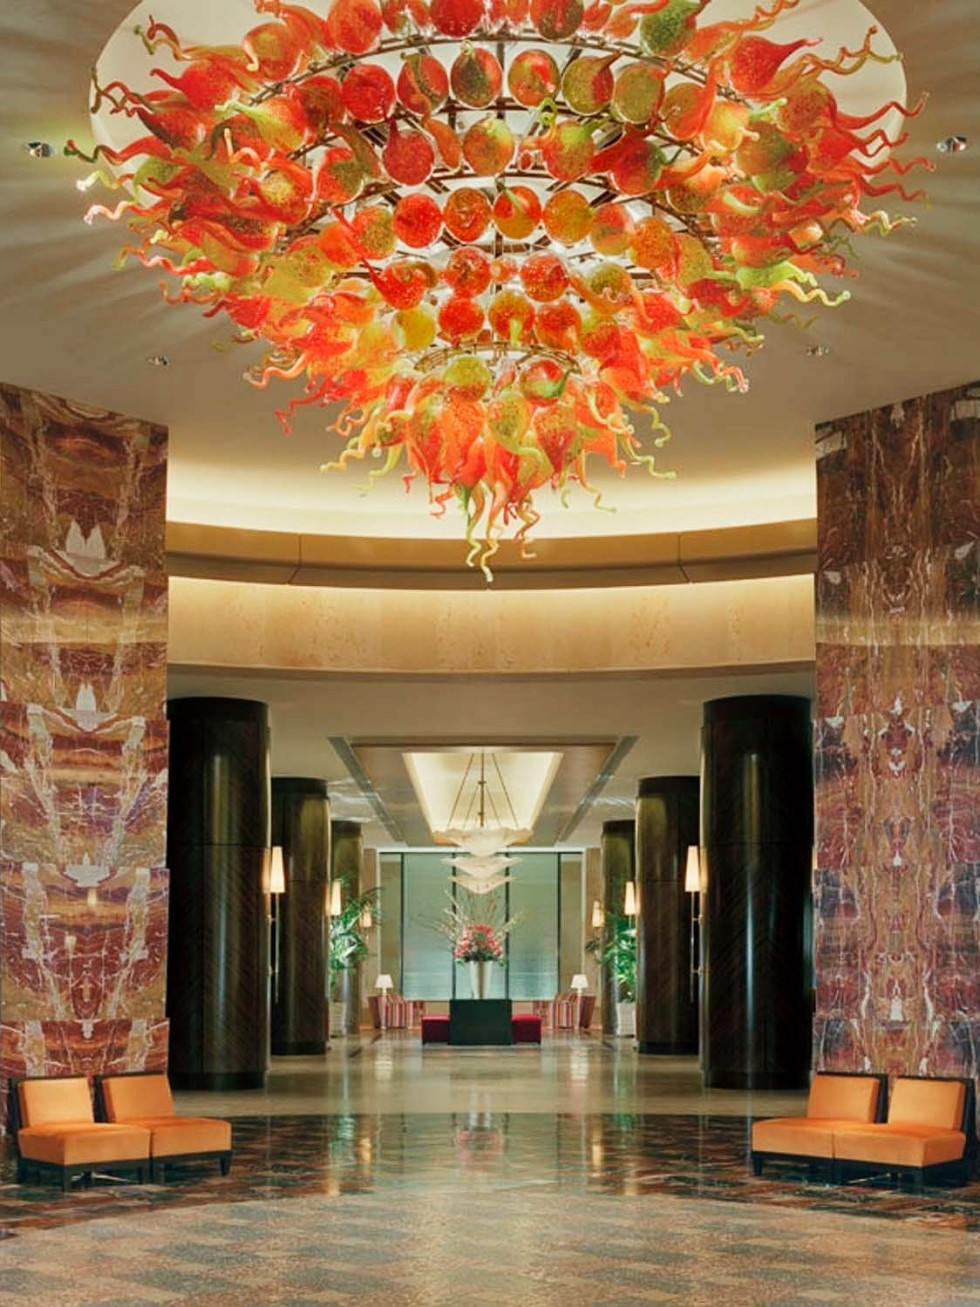 Places-Hotels/Spas-Hilton Americas-Houston-rotunda